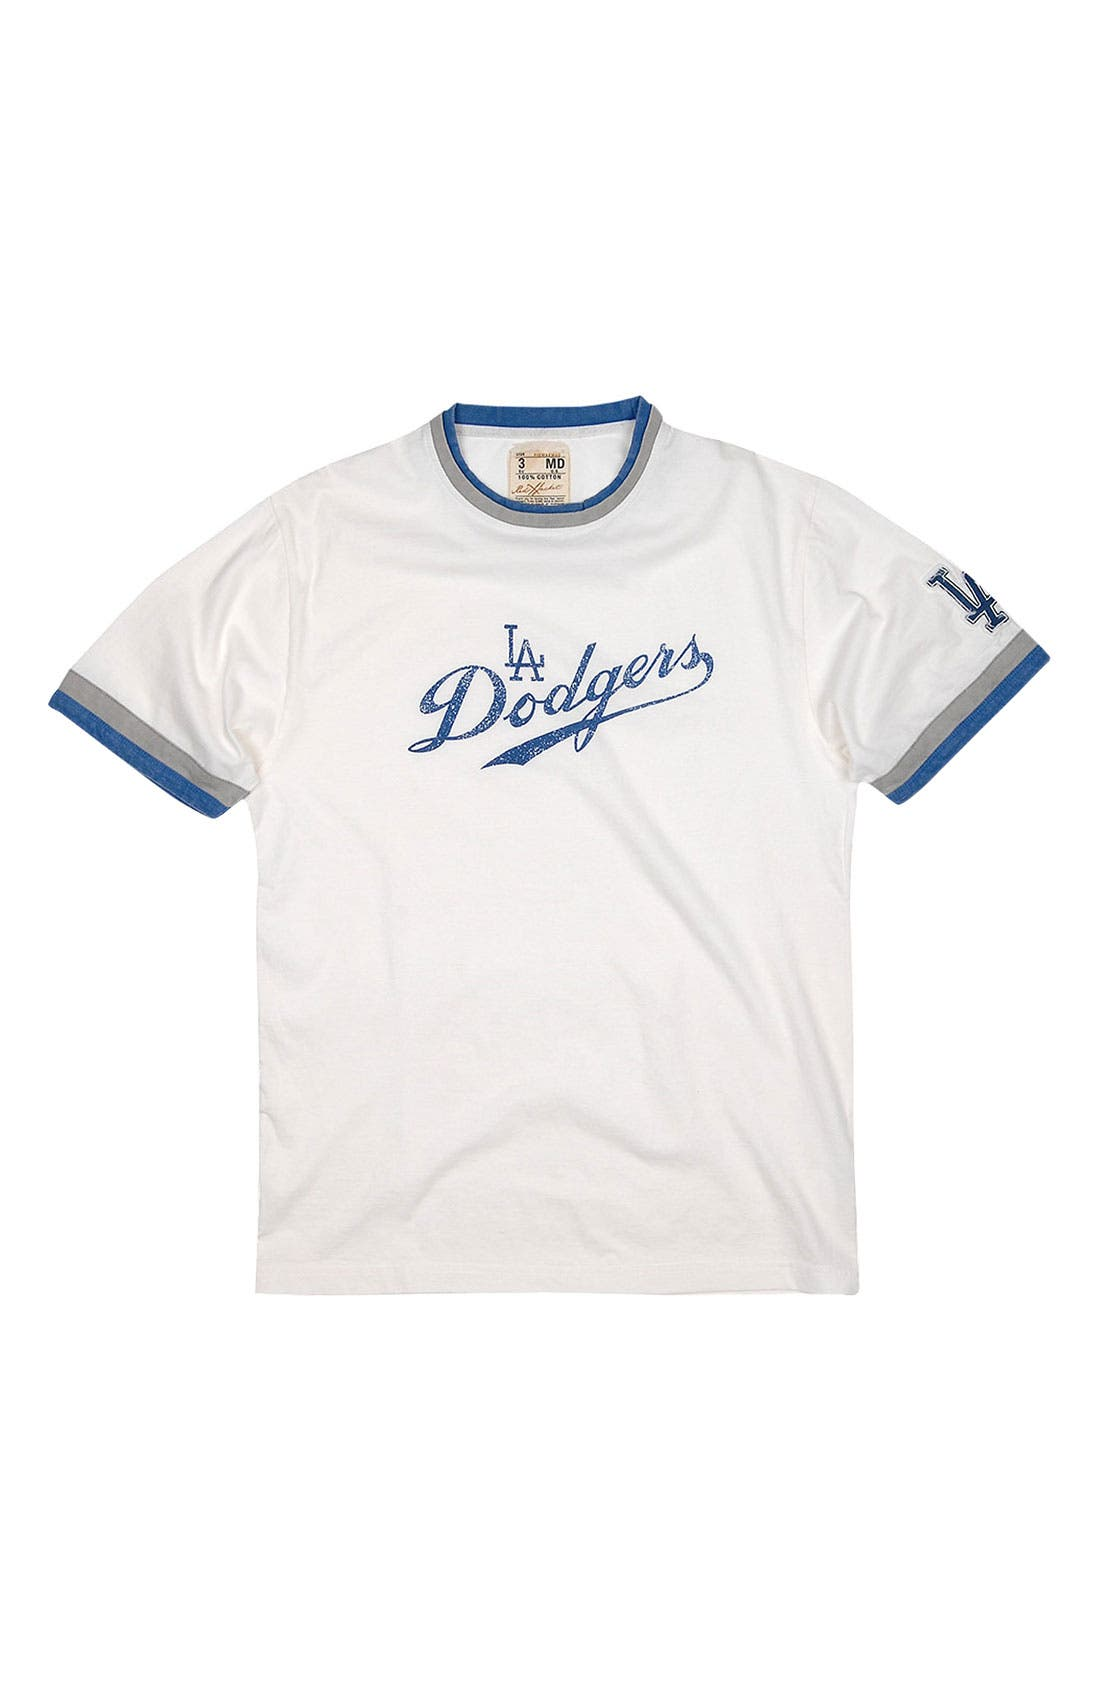 Alternate Image 1 Selected - Red Jacket 'Los Angeles Dodgers' Trim Fit Ringer T-Shirt (Men)